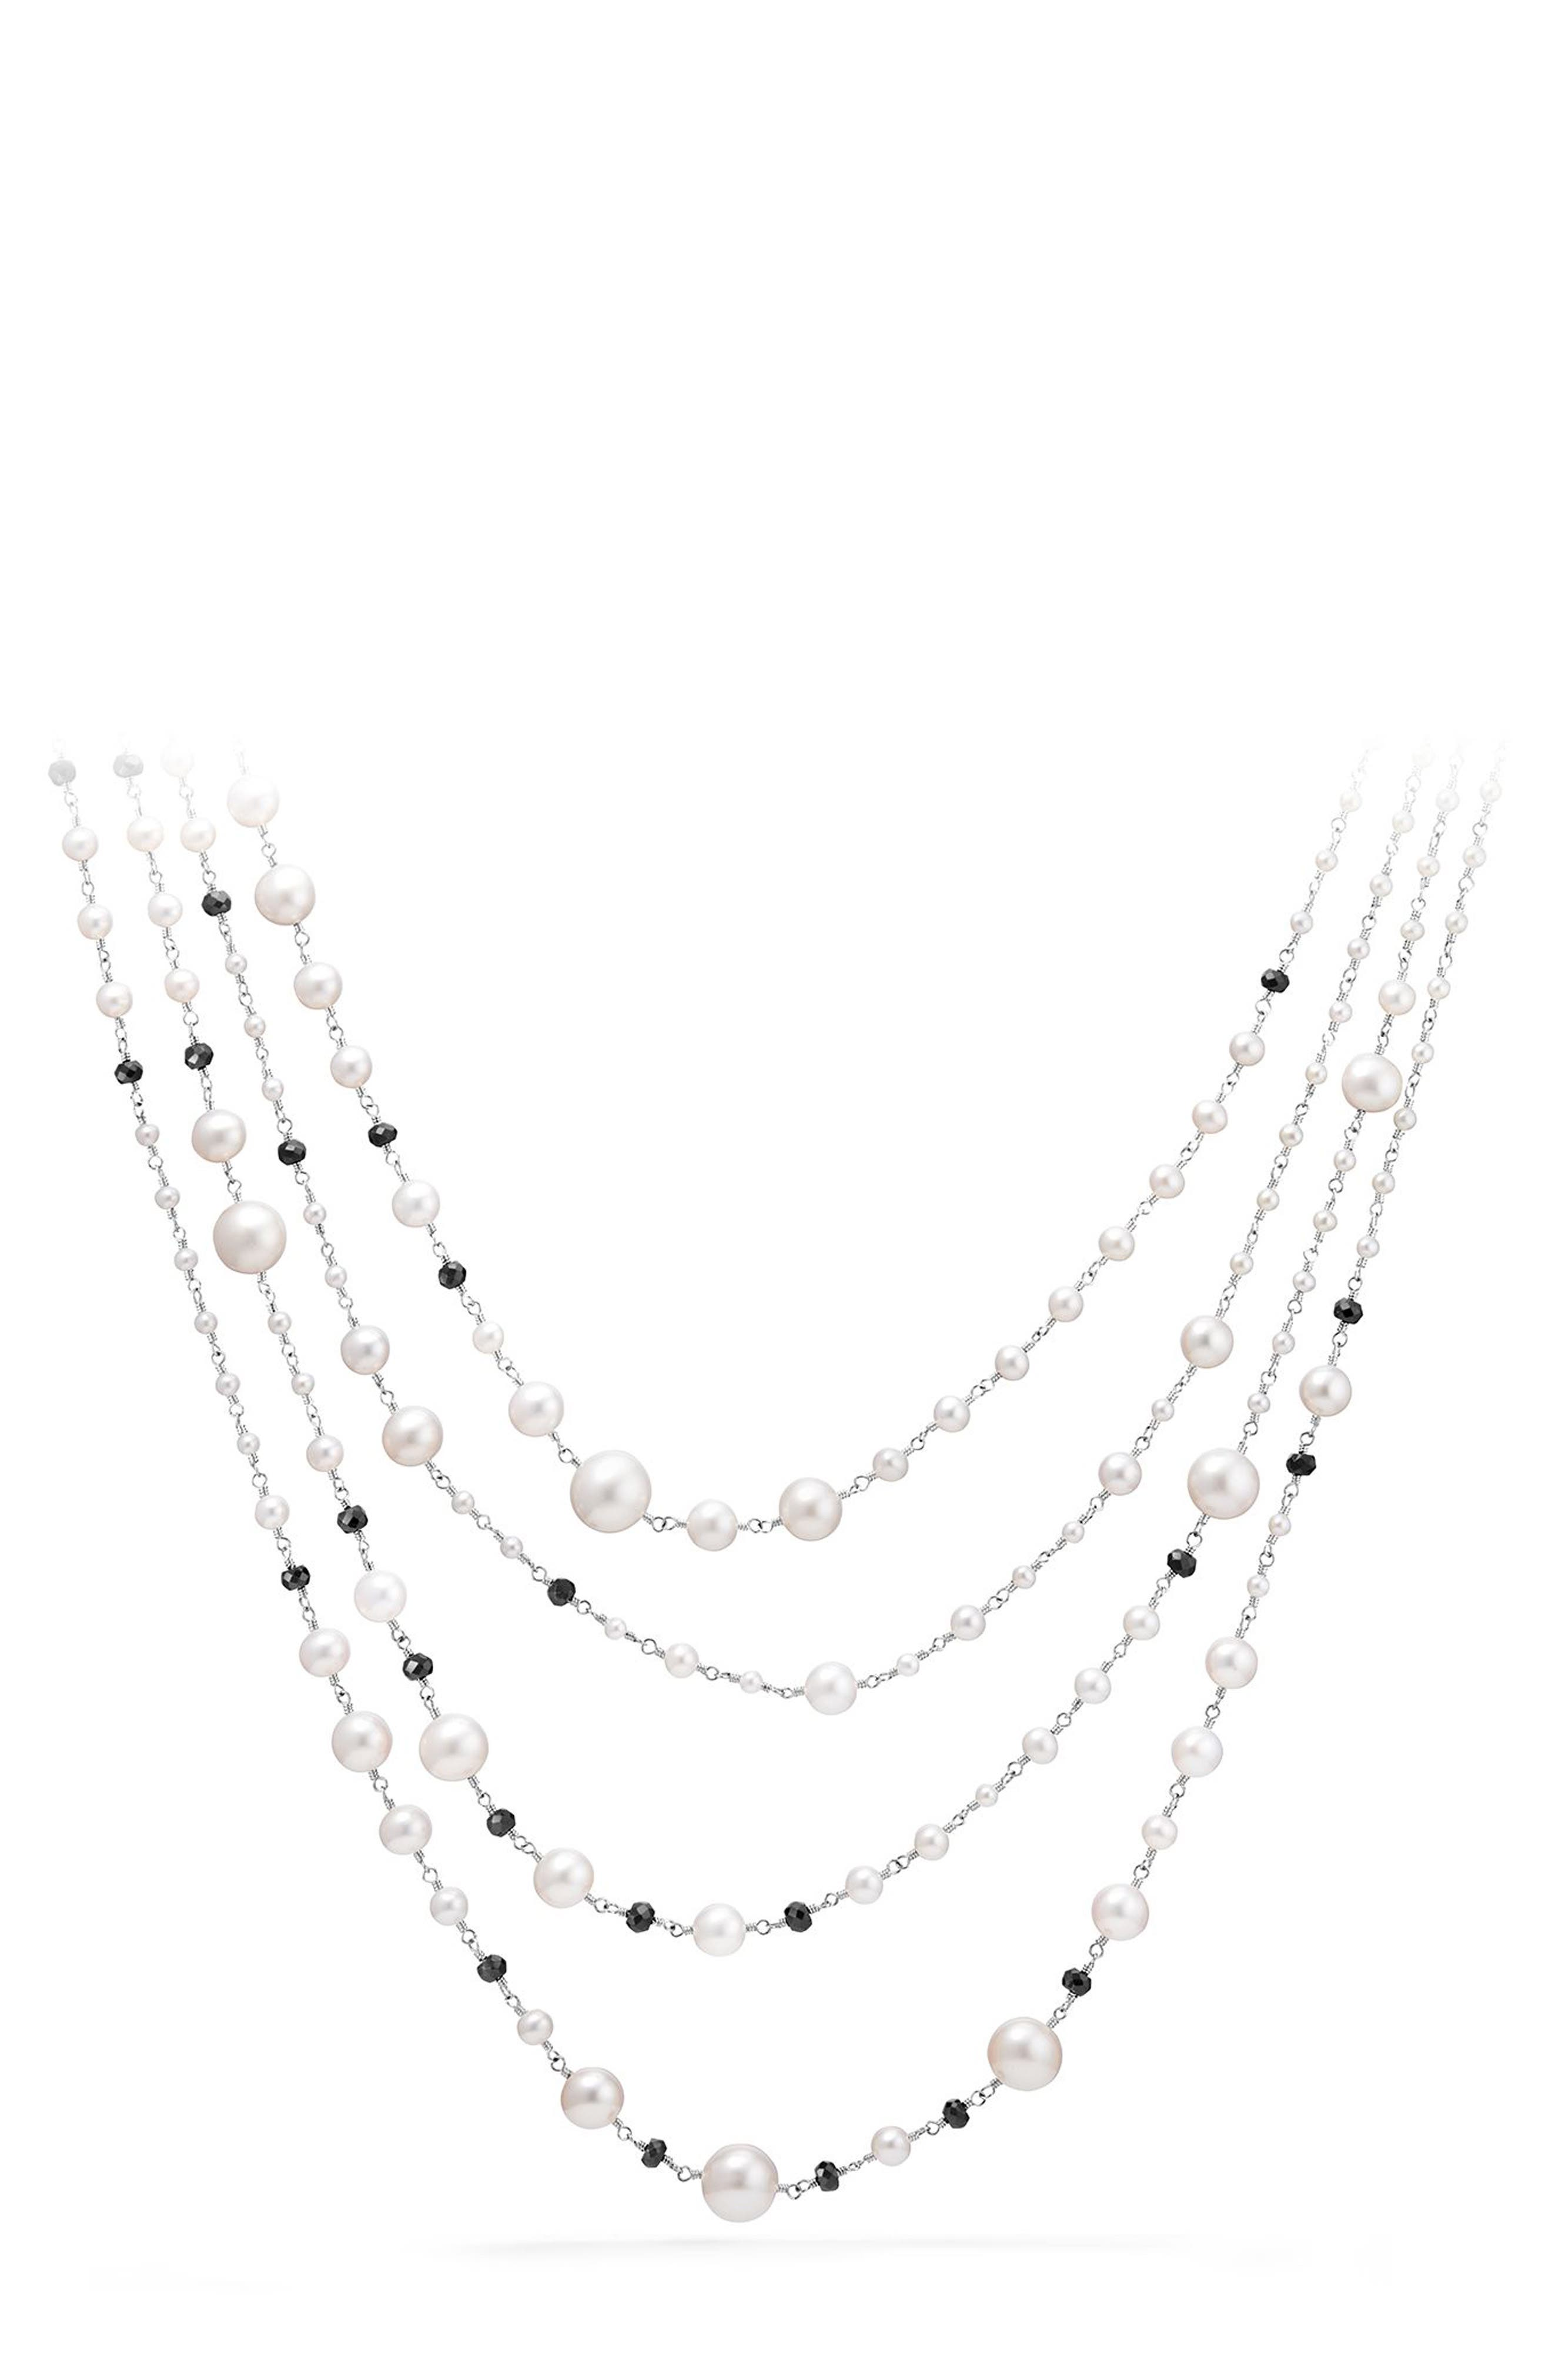 Solari Pearl & Bead Multistrand Necklace,                             Main thumbnail 1, color,                             PEARL/ BLACK SPINEL